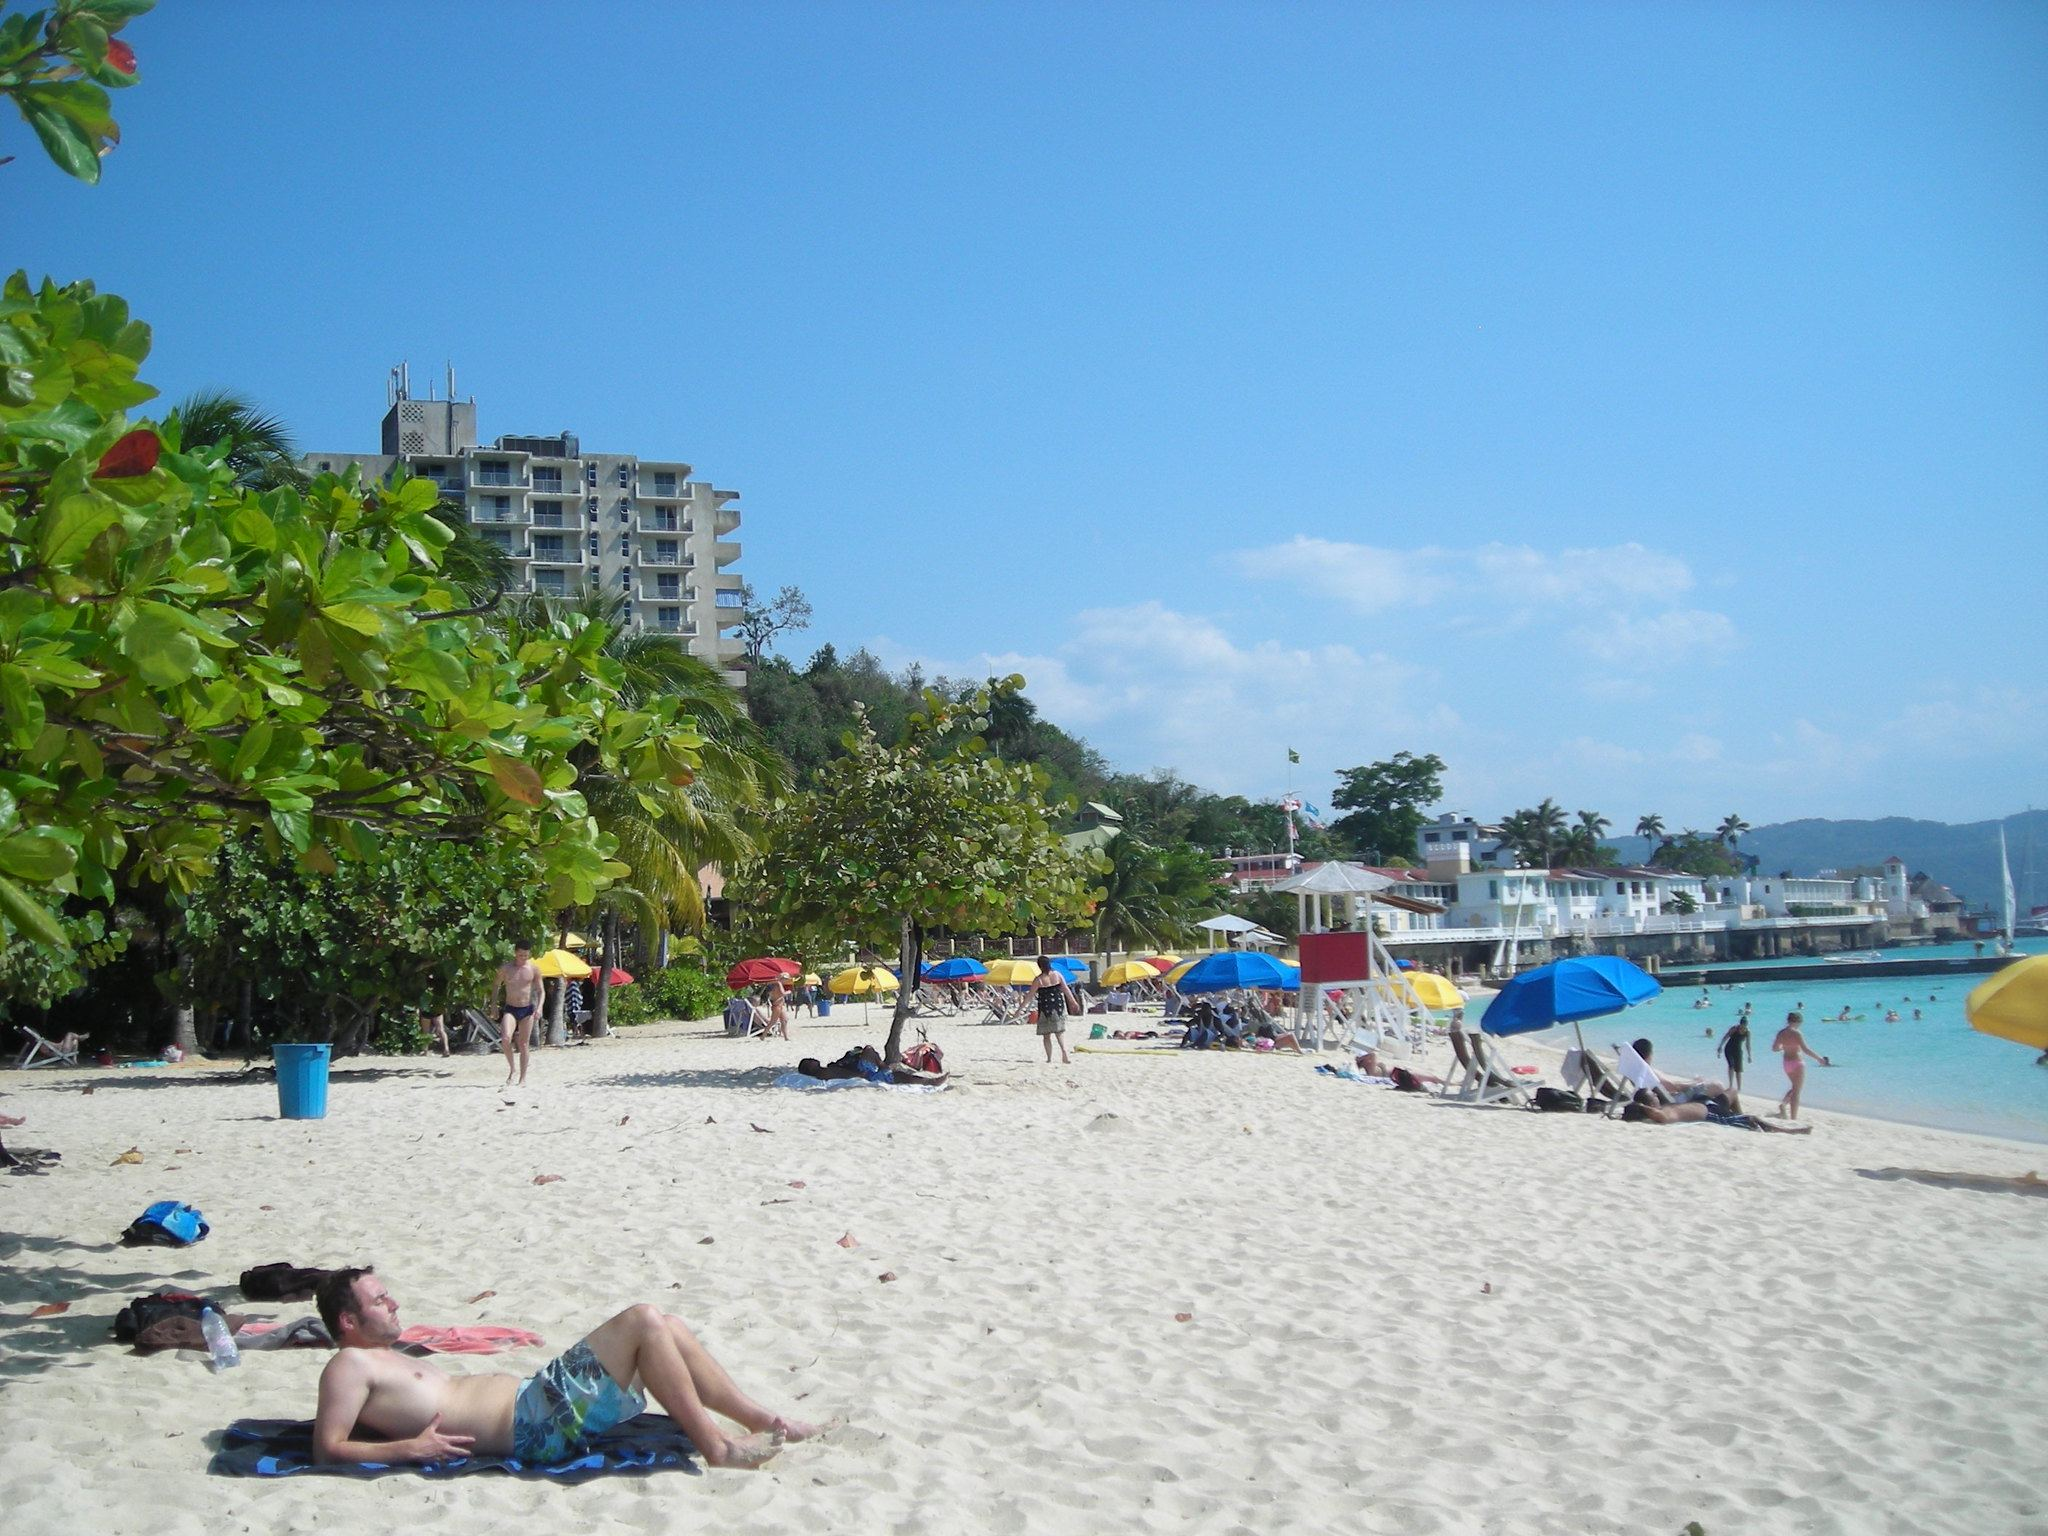 Best Beaches in Montego Bay, Jamaica - Top 10 Beaches in Montego Bay